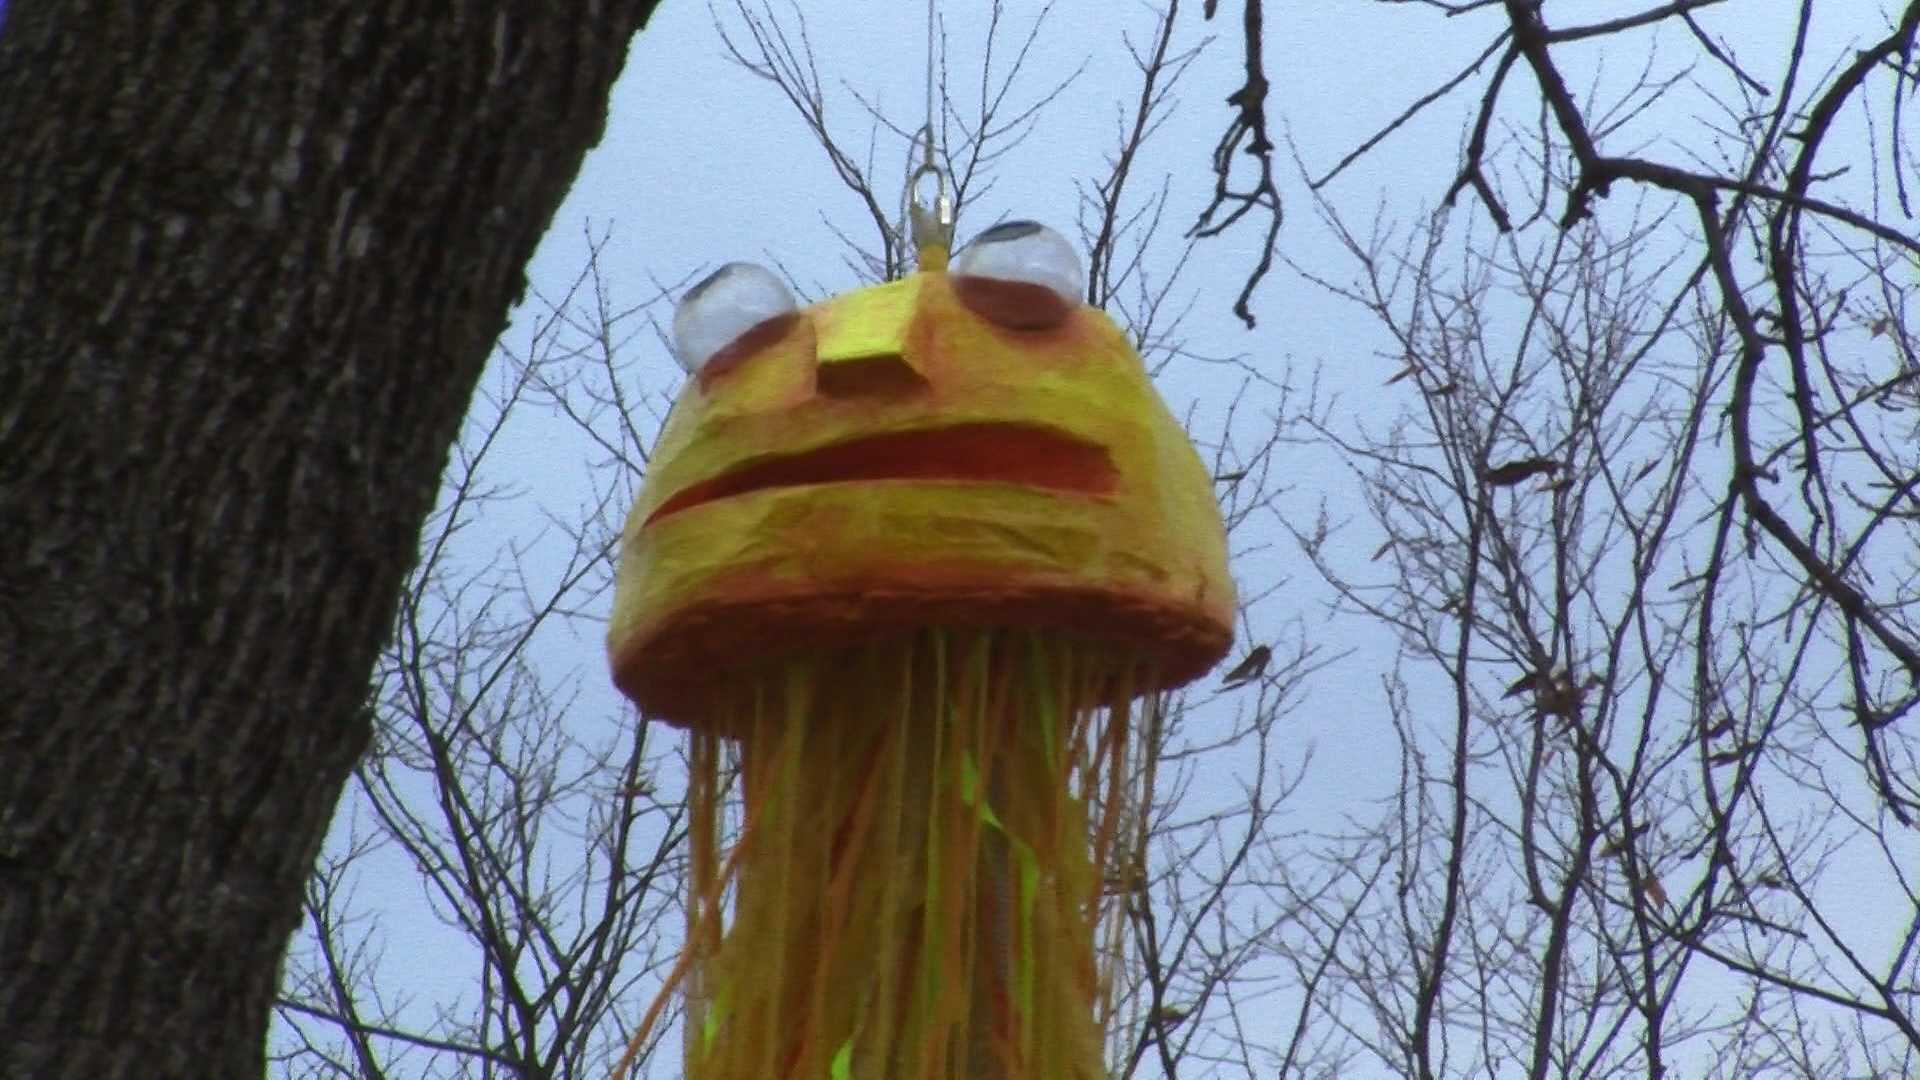 Have you seen them? Four large jellyfish hang in the trees outside of Burlington City Hall. They're part of a project by artist Abby Manock and are presented through Burlington City Arts.